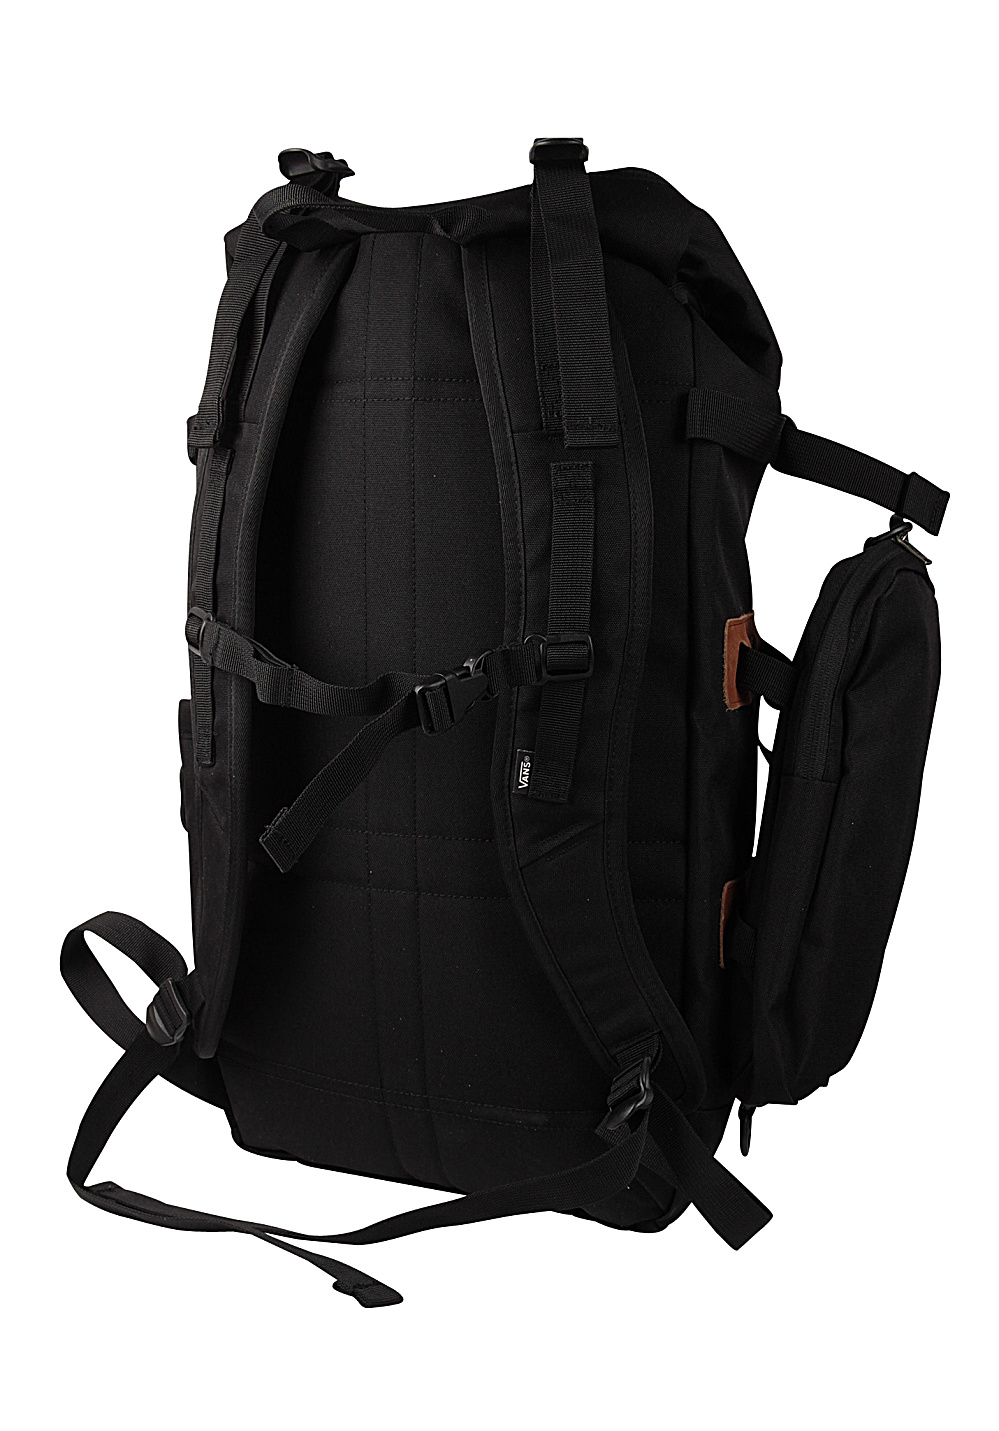 ec252a23fb Vans Depot Backpack - Backpack for Men - Black - Planet Sports